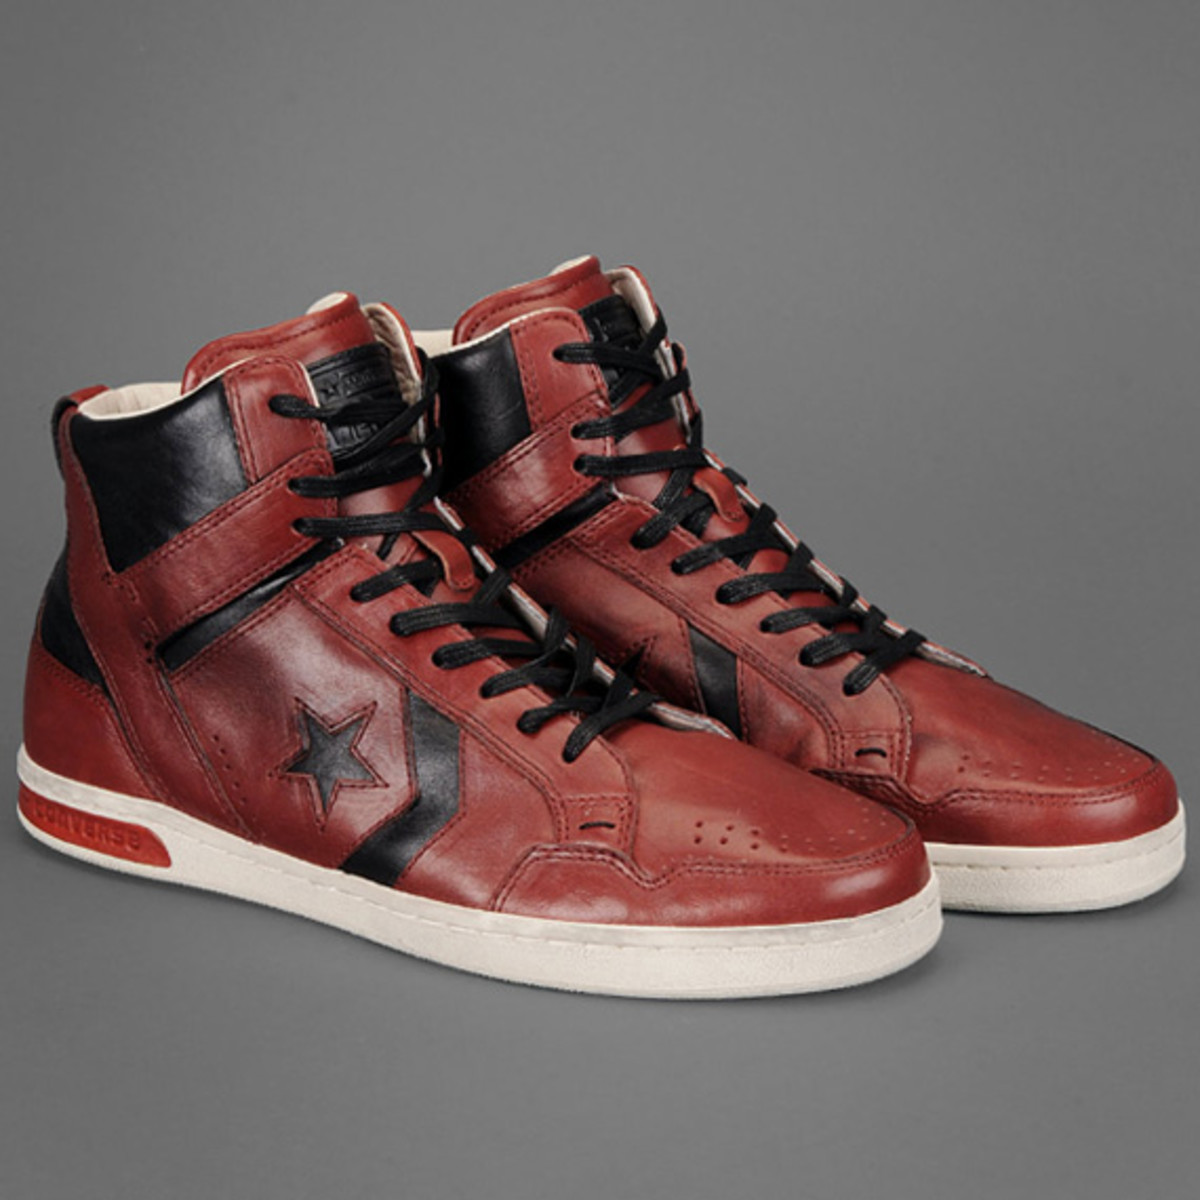 john-varvatos-converse-weapon-17